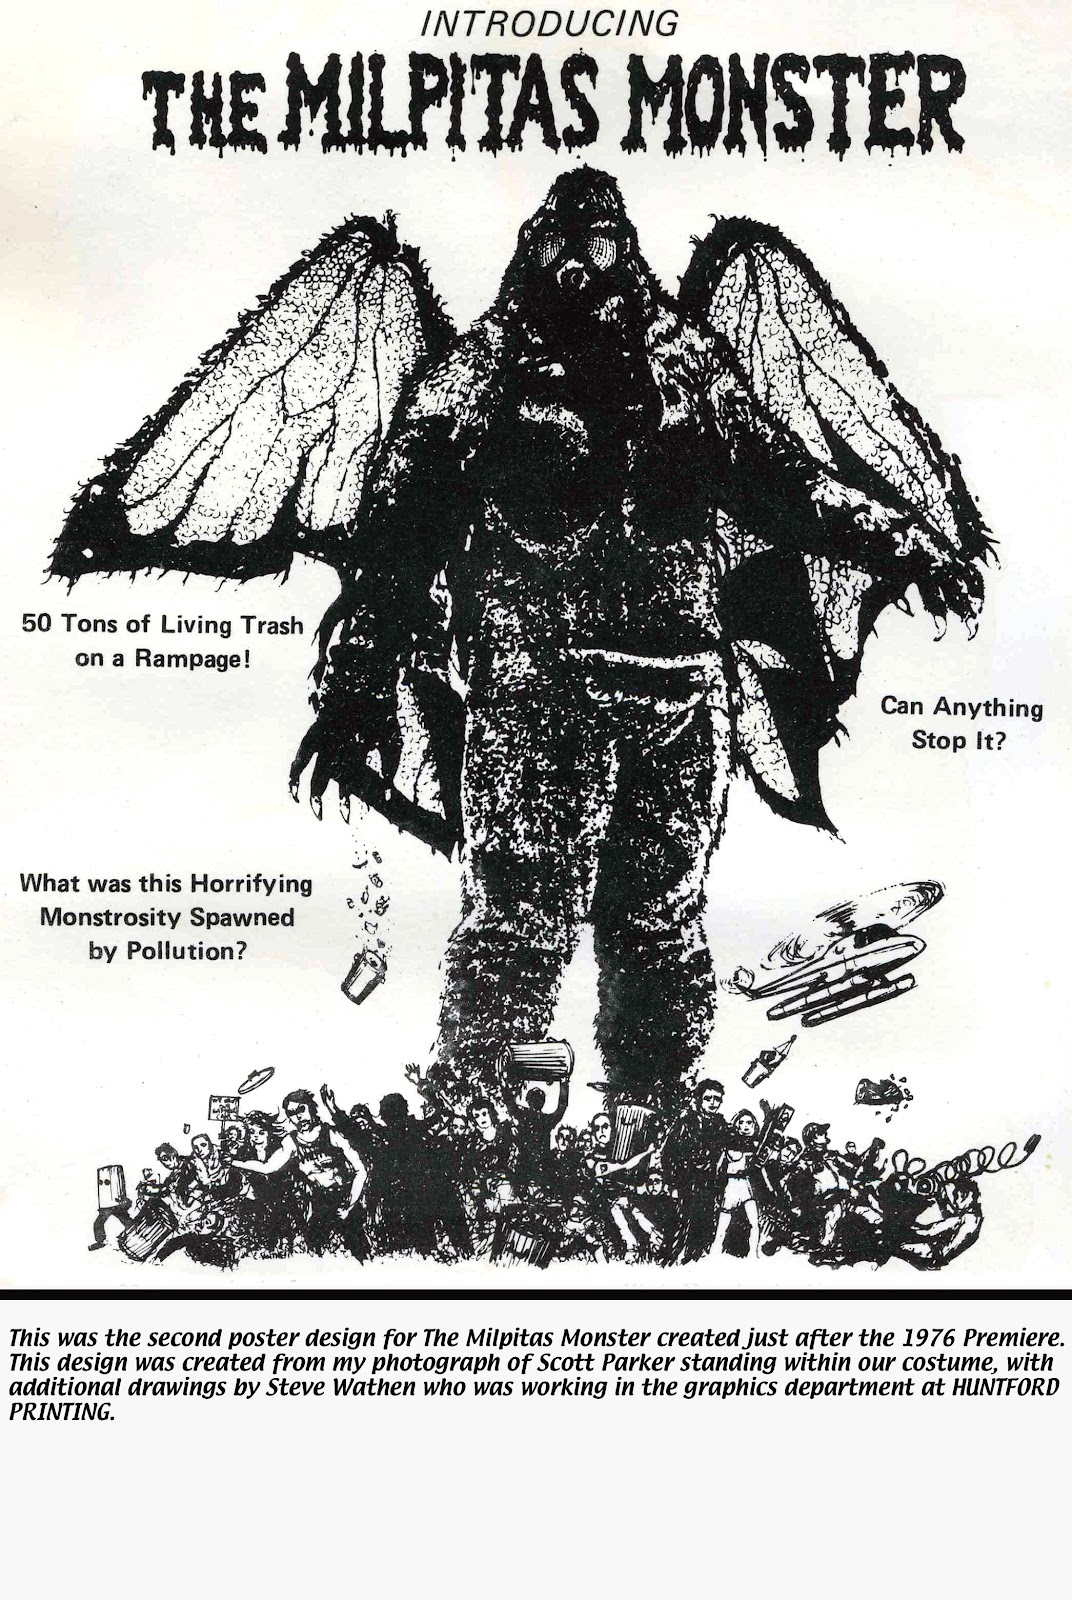 milpitas_monster_poster_1975_01.jpg